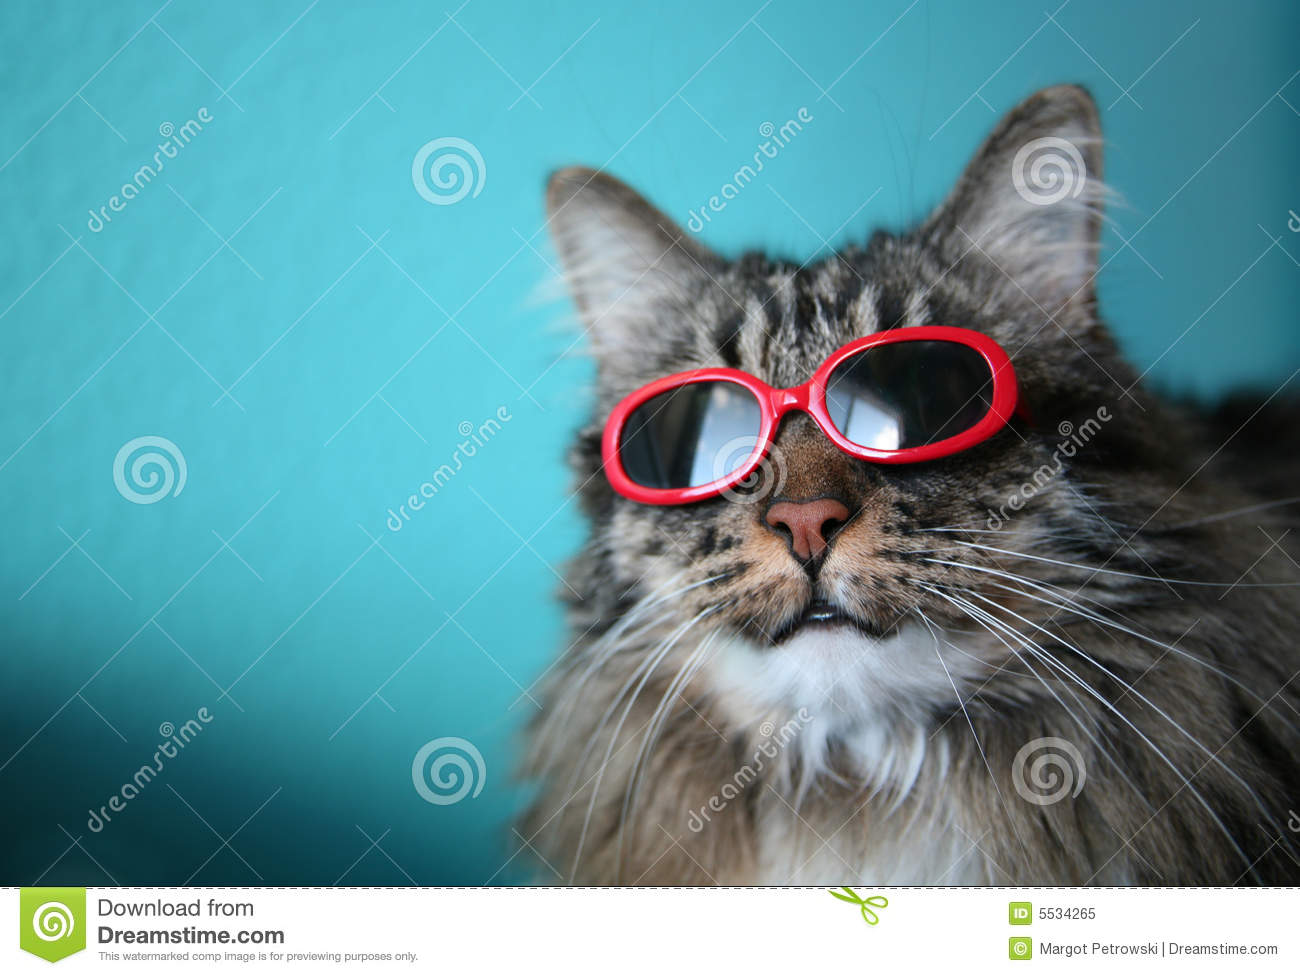 Cool Cat with Shades